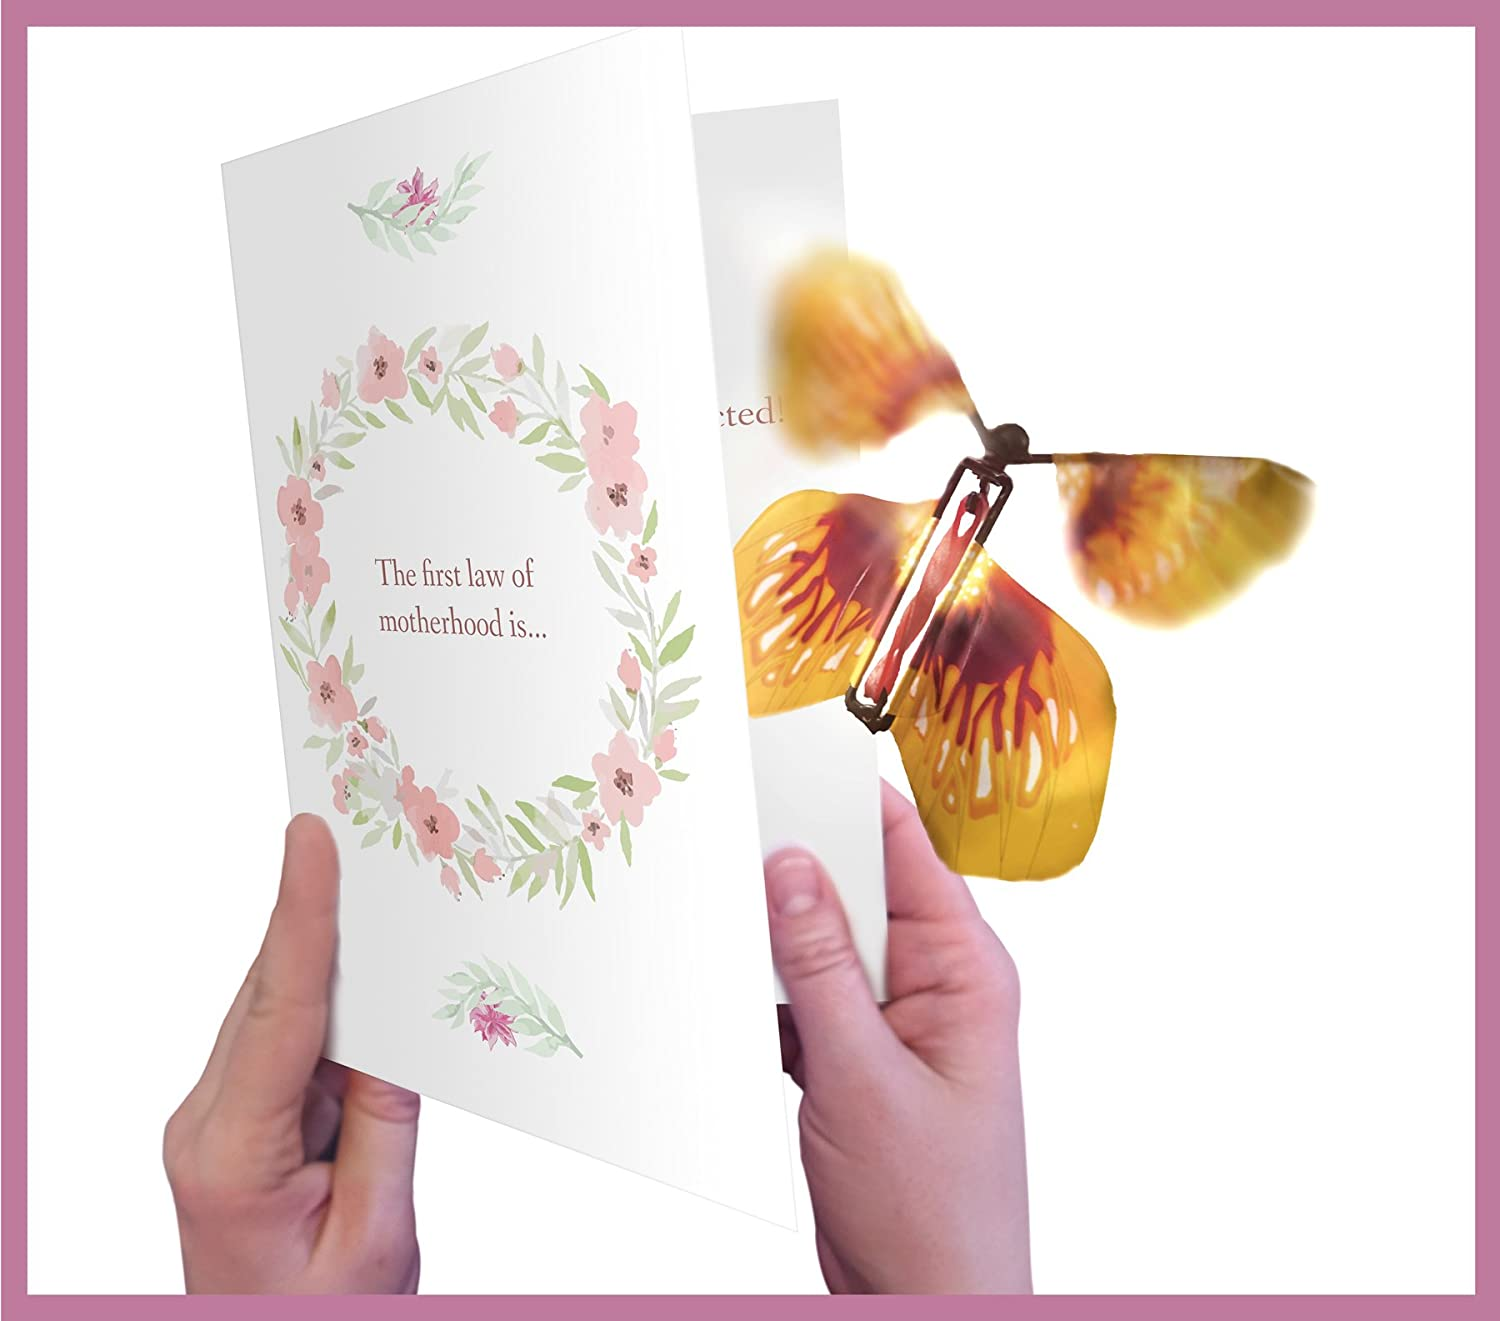 Surprise! Mother's Day Card with Magic Butterfly by wahoocards | Funny unique greeting card for Mother's Day